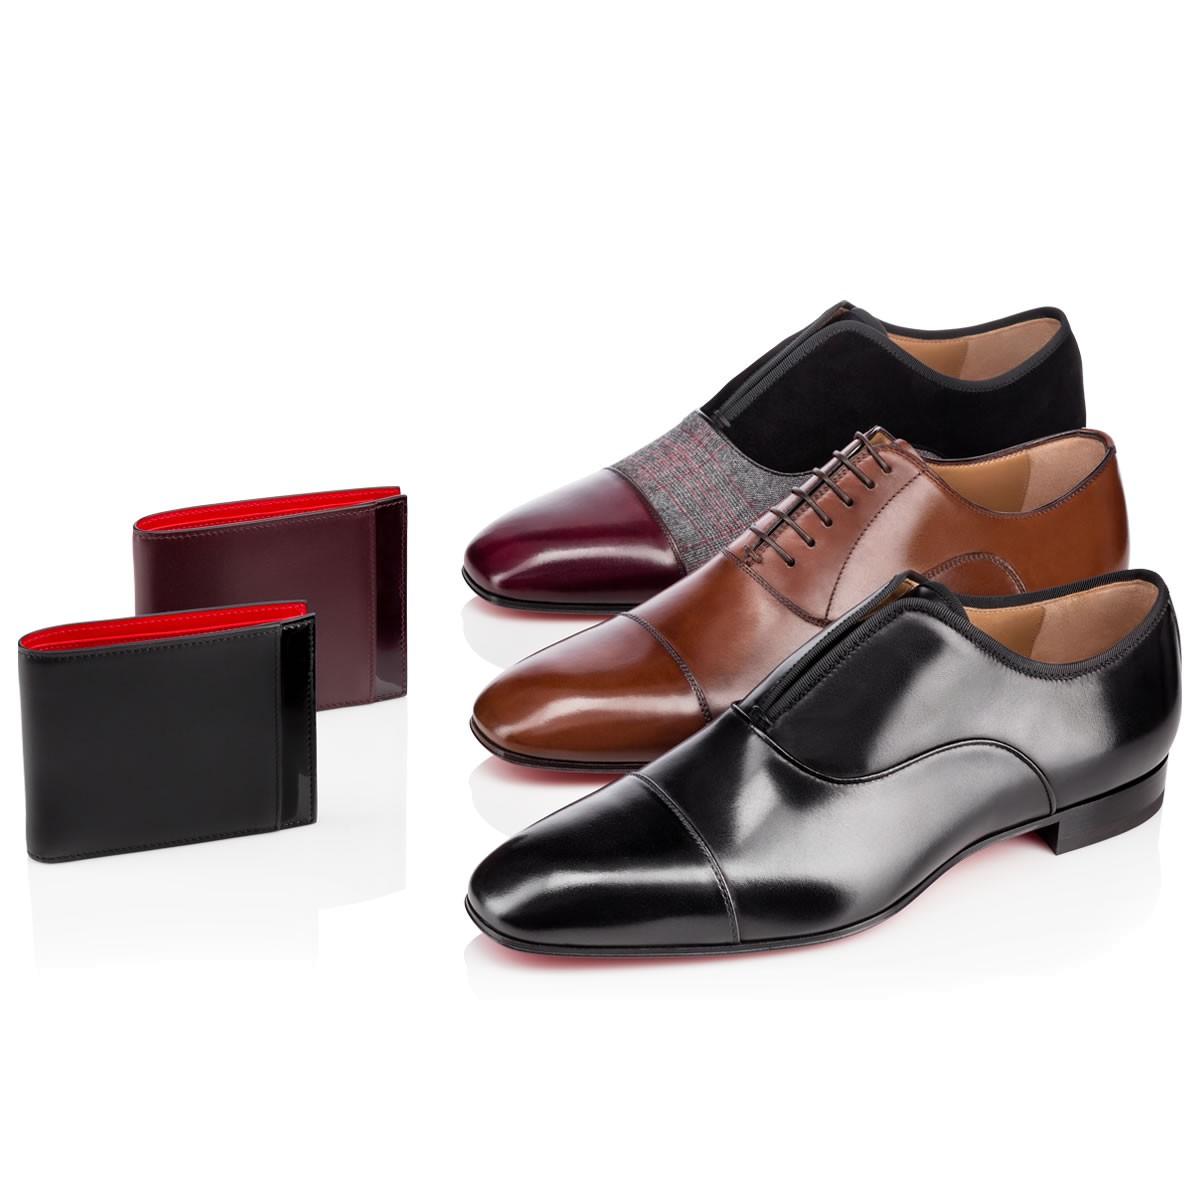 us replica shoes christian louboutin - christian louboutin leather Olympio Flat Brogues | cosmetics ...